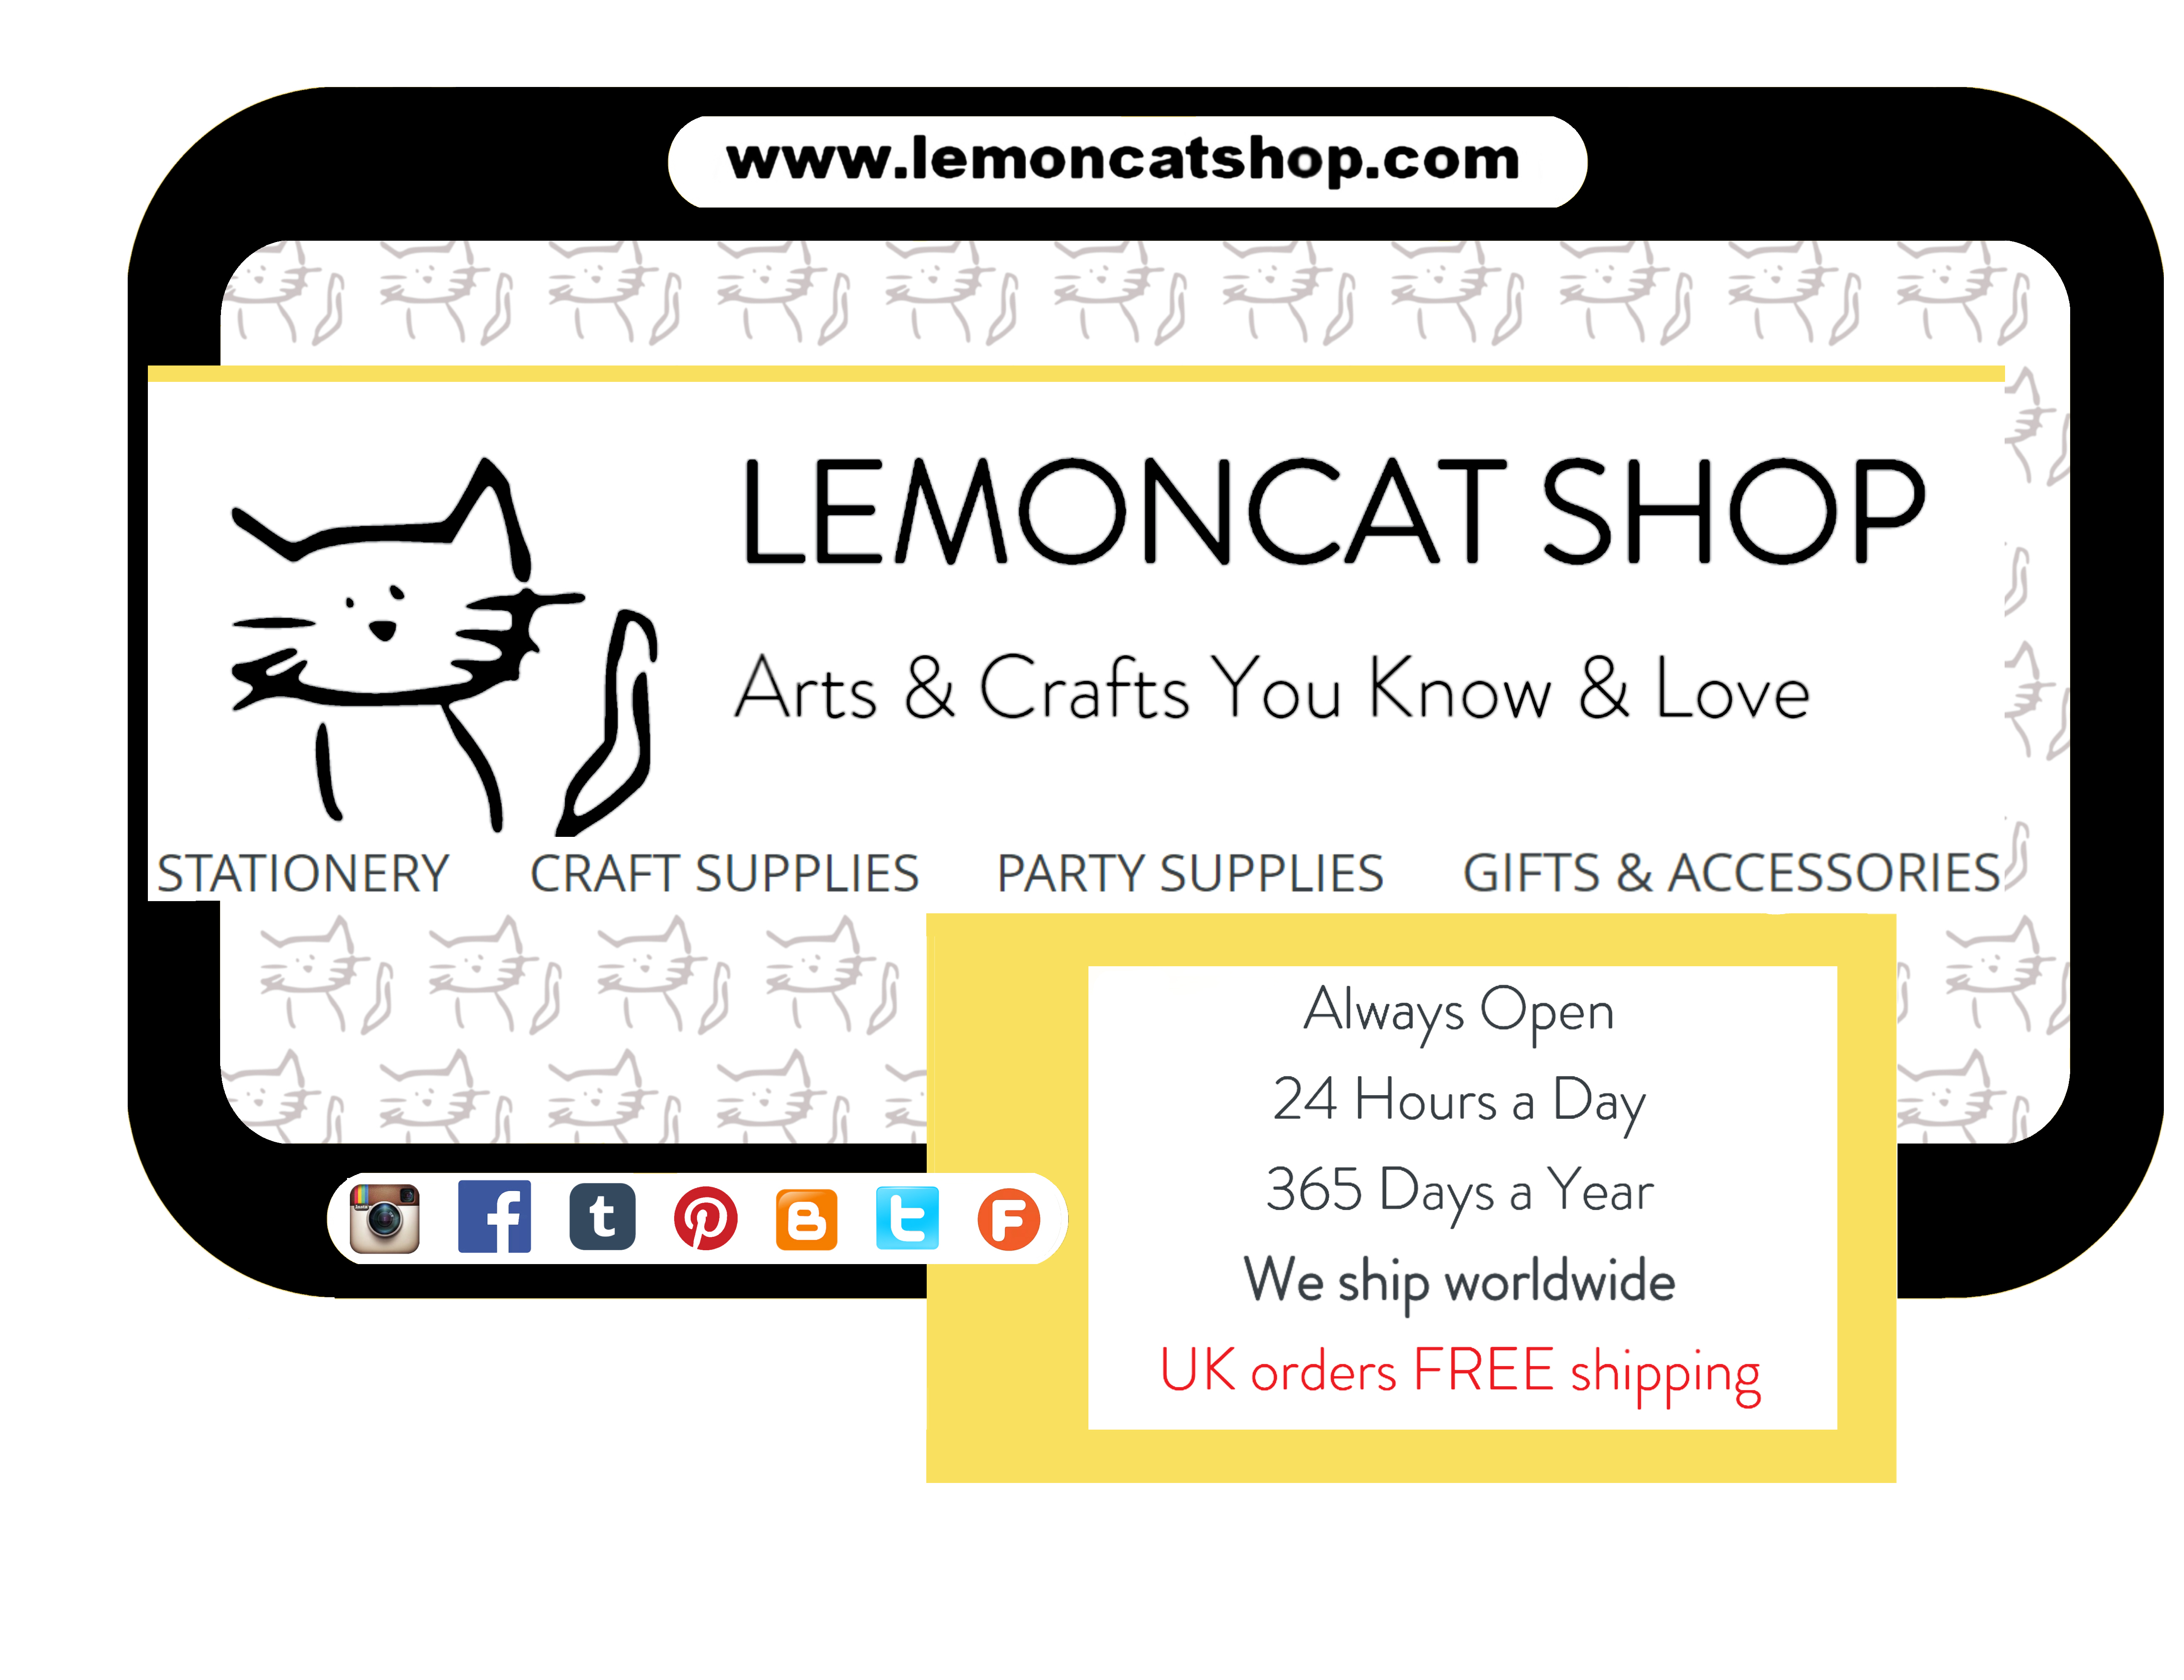 The lemonCatShop